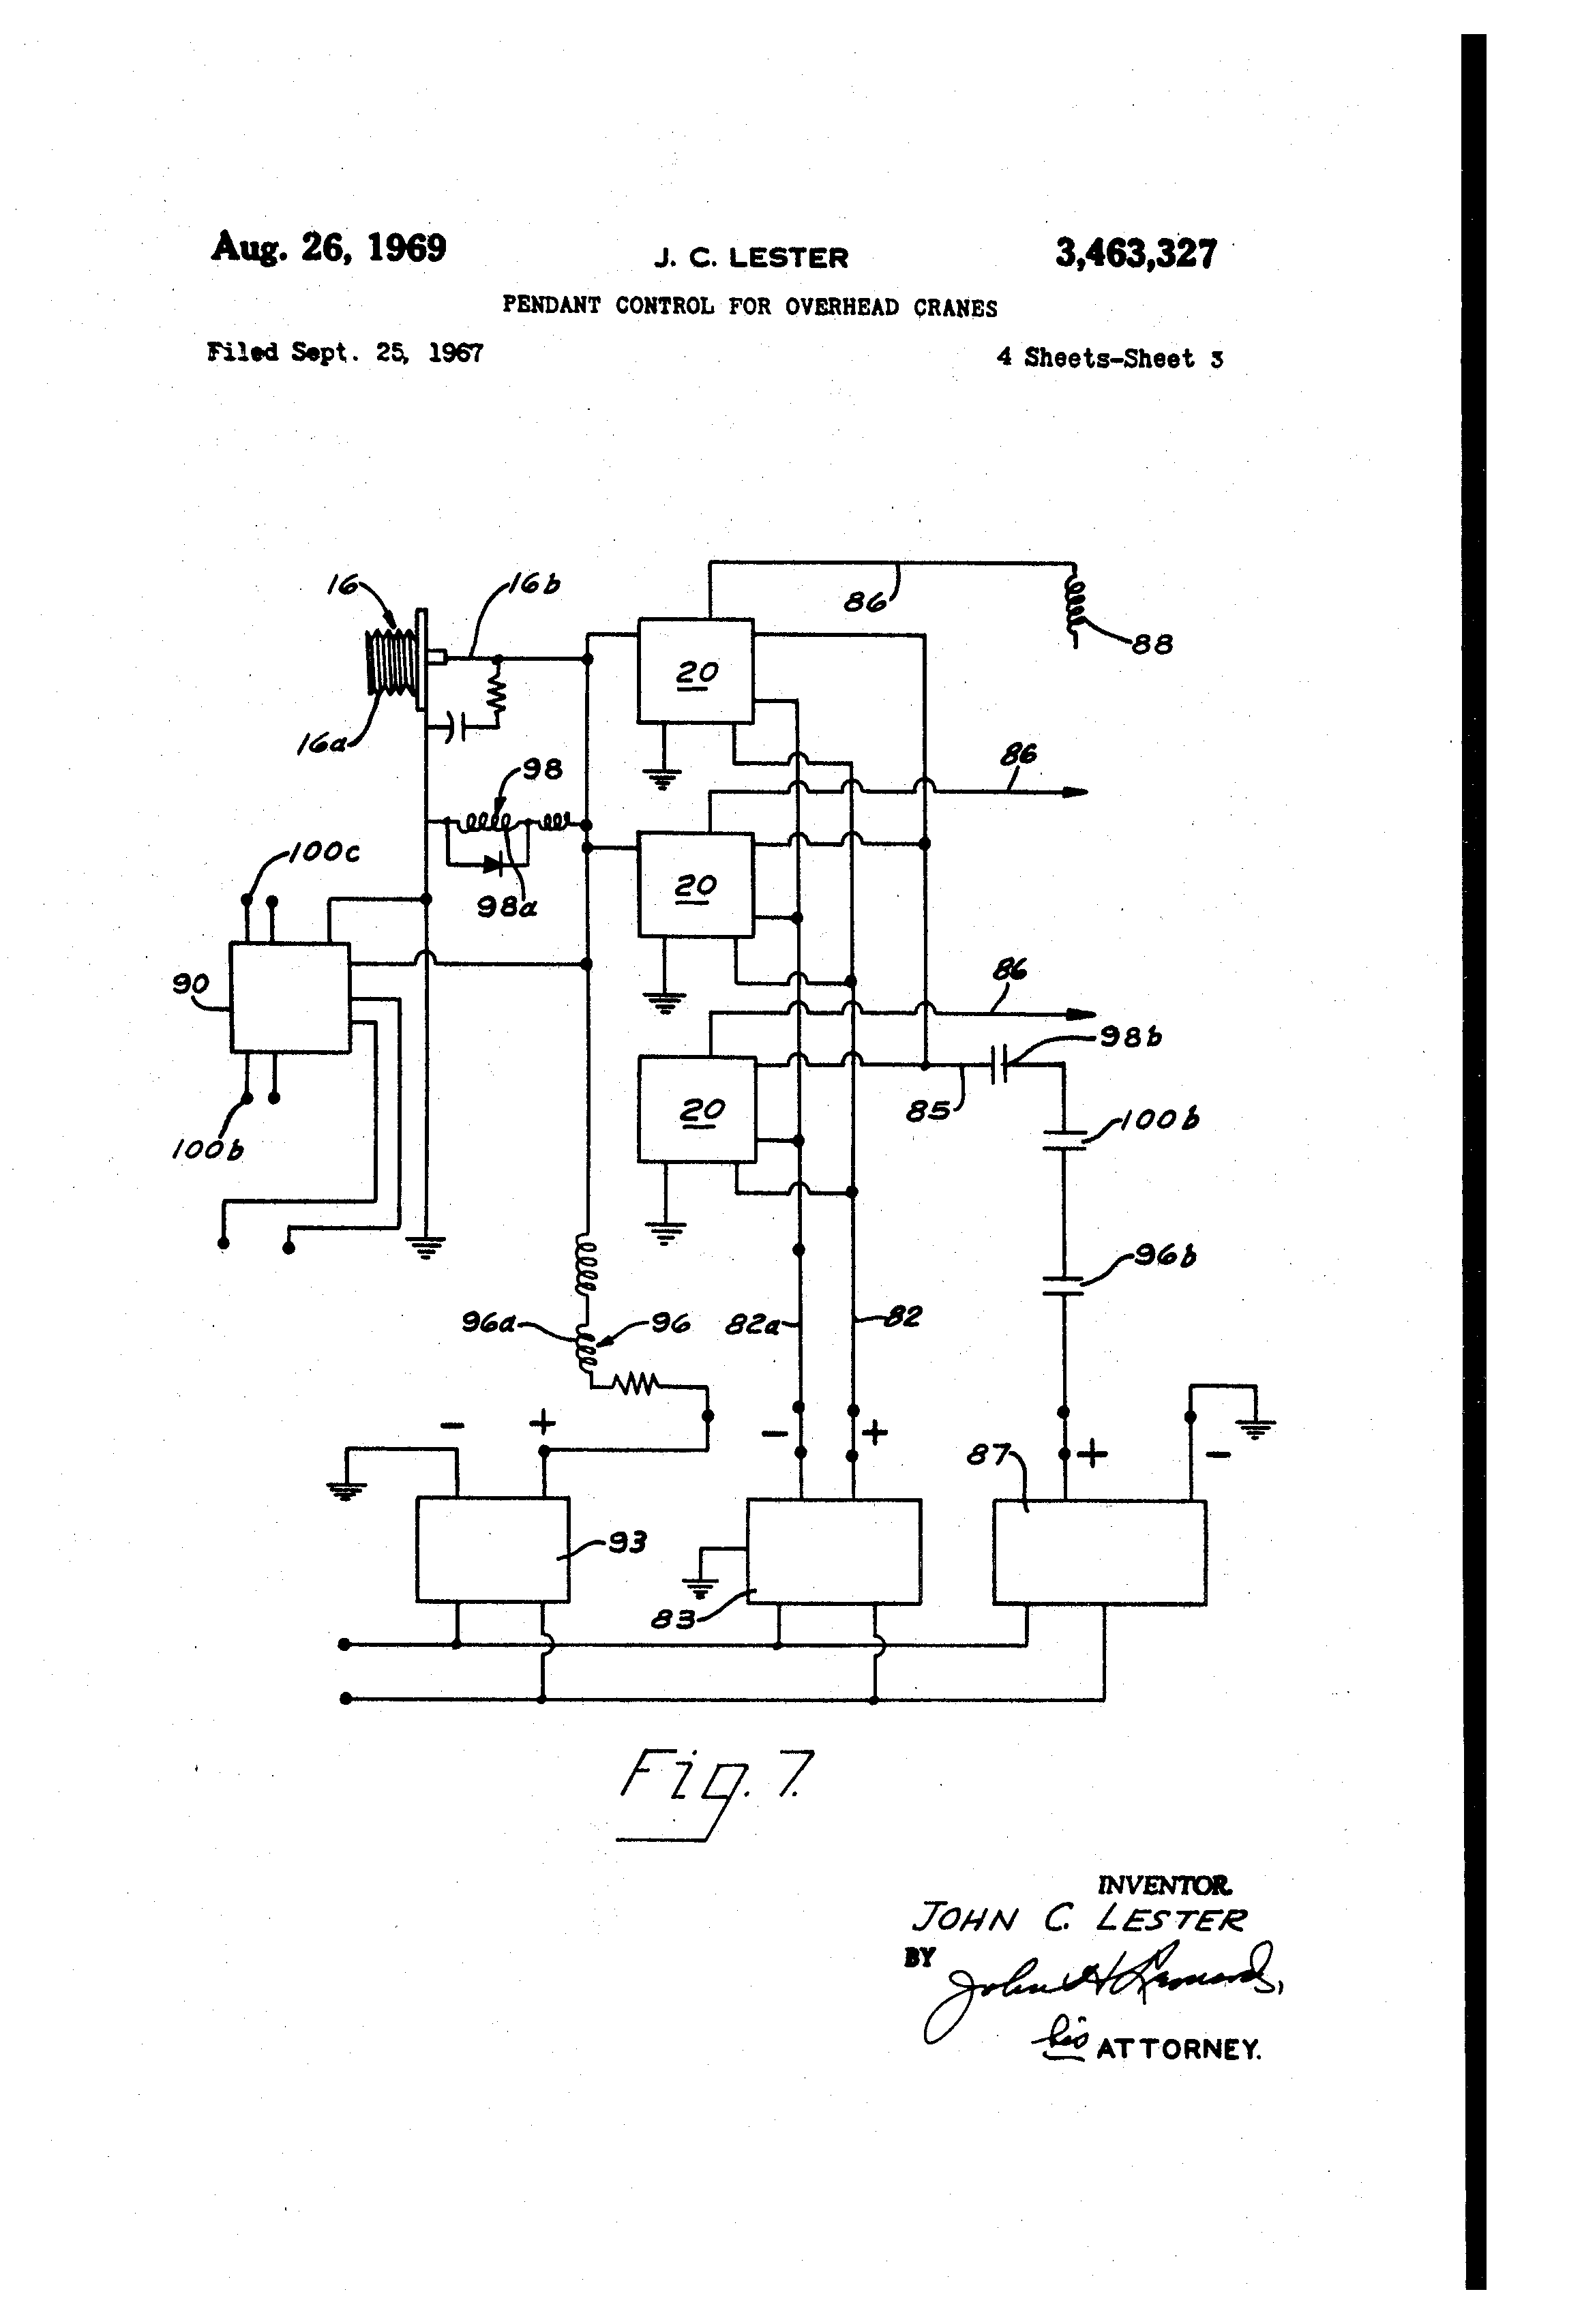 US3463327 2 patent us3463327 pendant control for overhead cranes google lester controls wiring diagrams at gsmportal.co